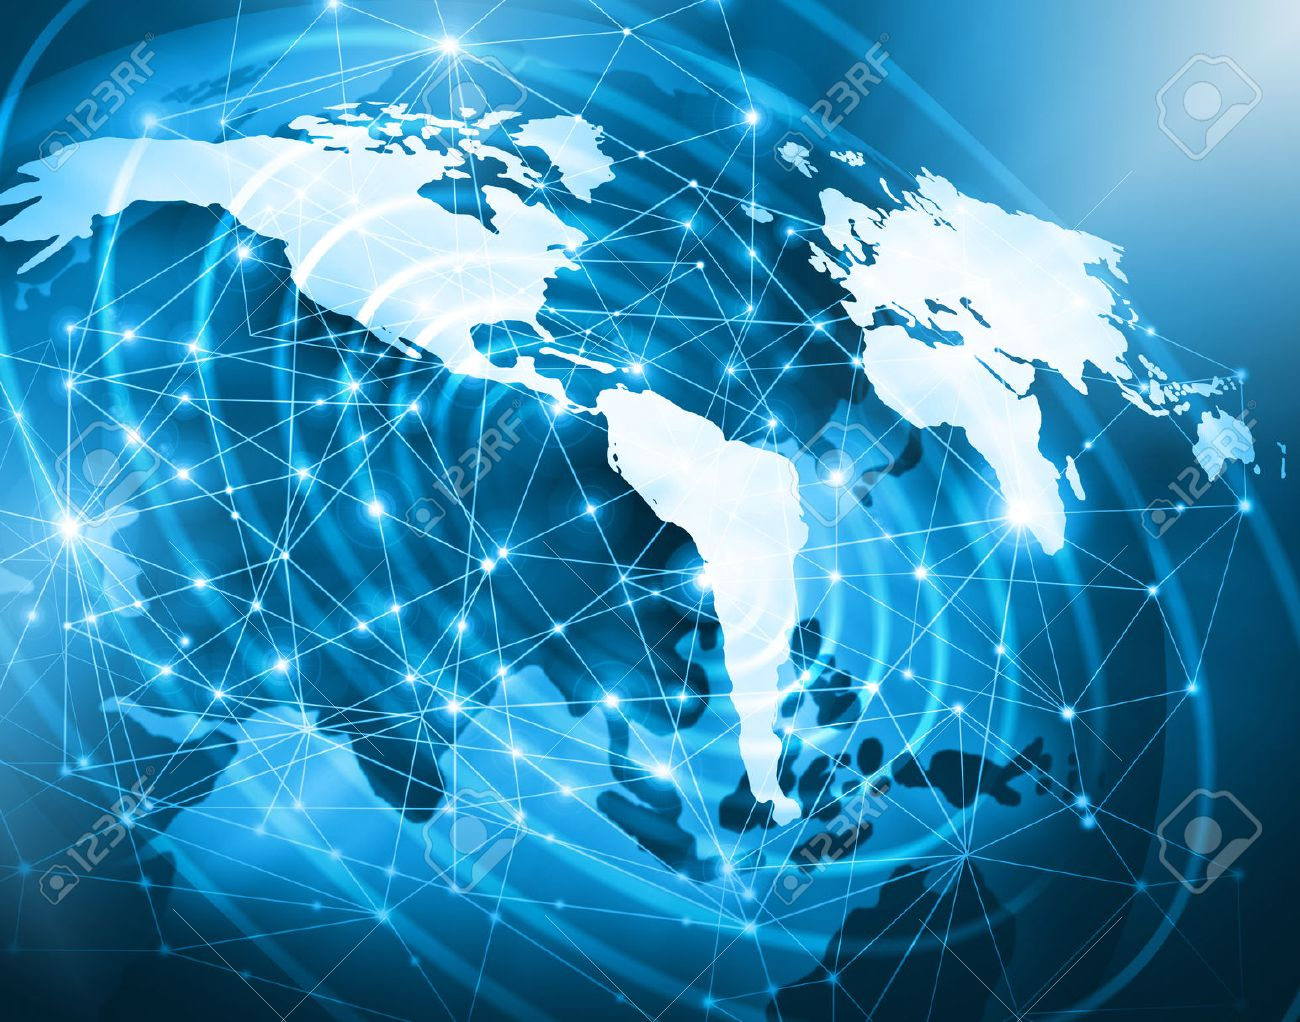 World map on a technological background, glowing lines symbols of the Internet, radio, television, mobile and satellite communications. Internet Concept of global business. - 51271415